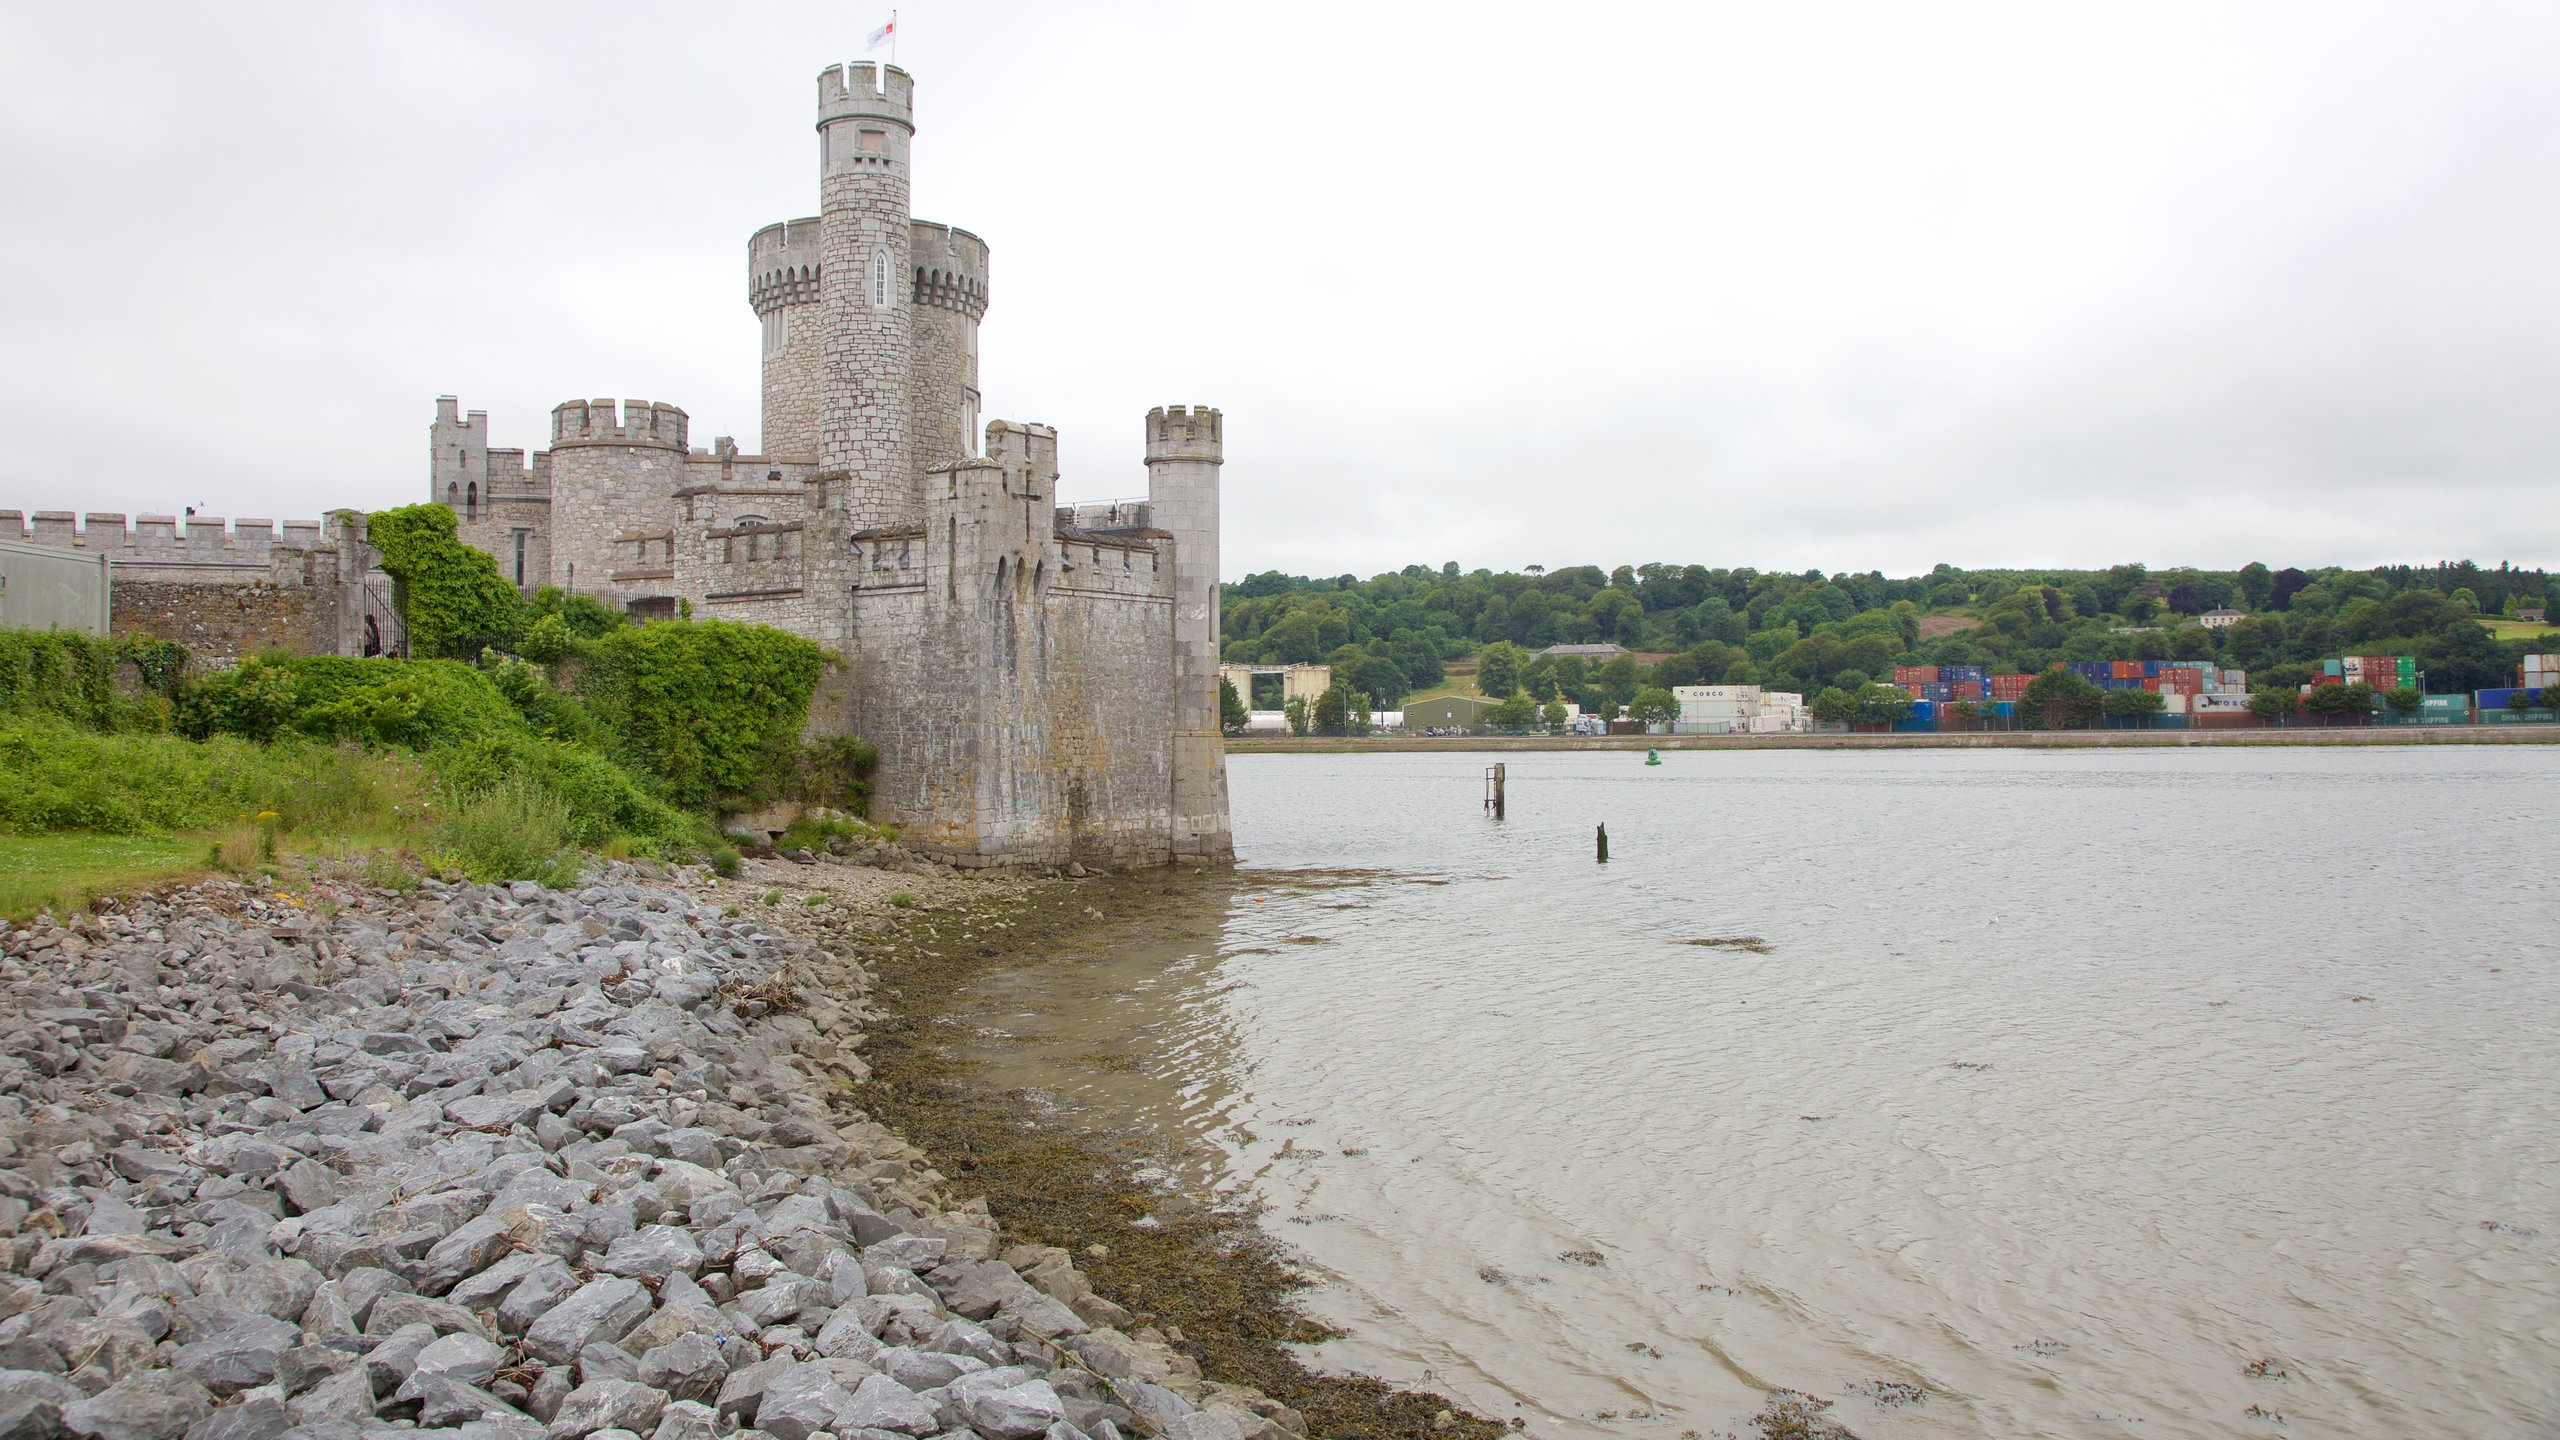 Have fun with hands-on science exhibits, visit an interactive theater and learn about Cork's past while you explore this 400-year-old riverfront castle.